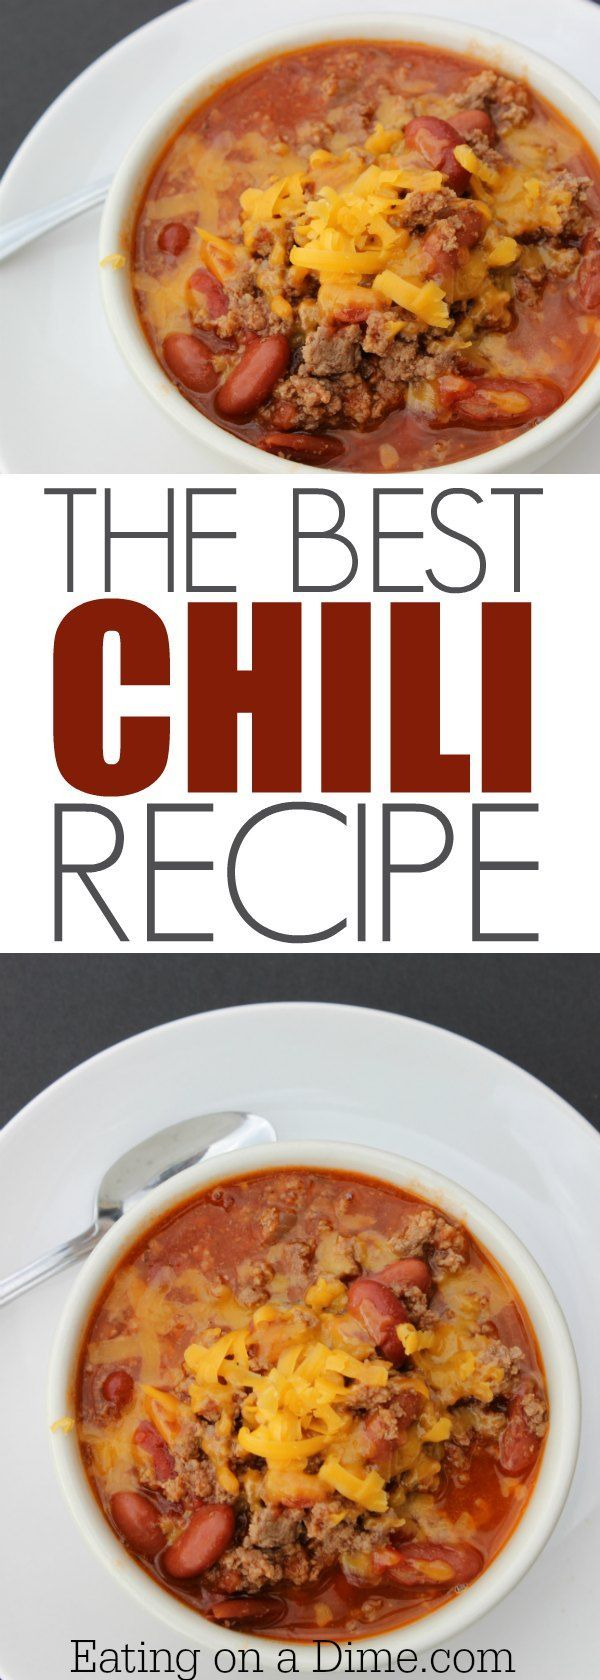 Make this easy quick chili recipe. We call it the amazing chili recipe, because it is that good. Make this easy chili recipe with beans or without beans.